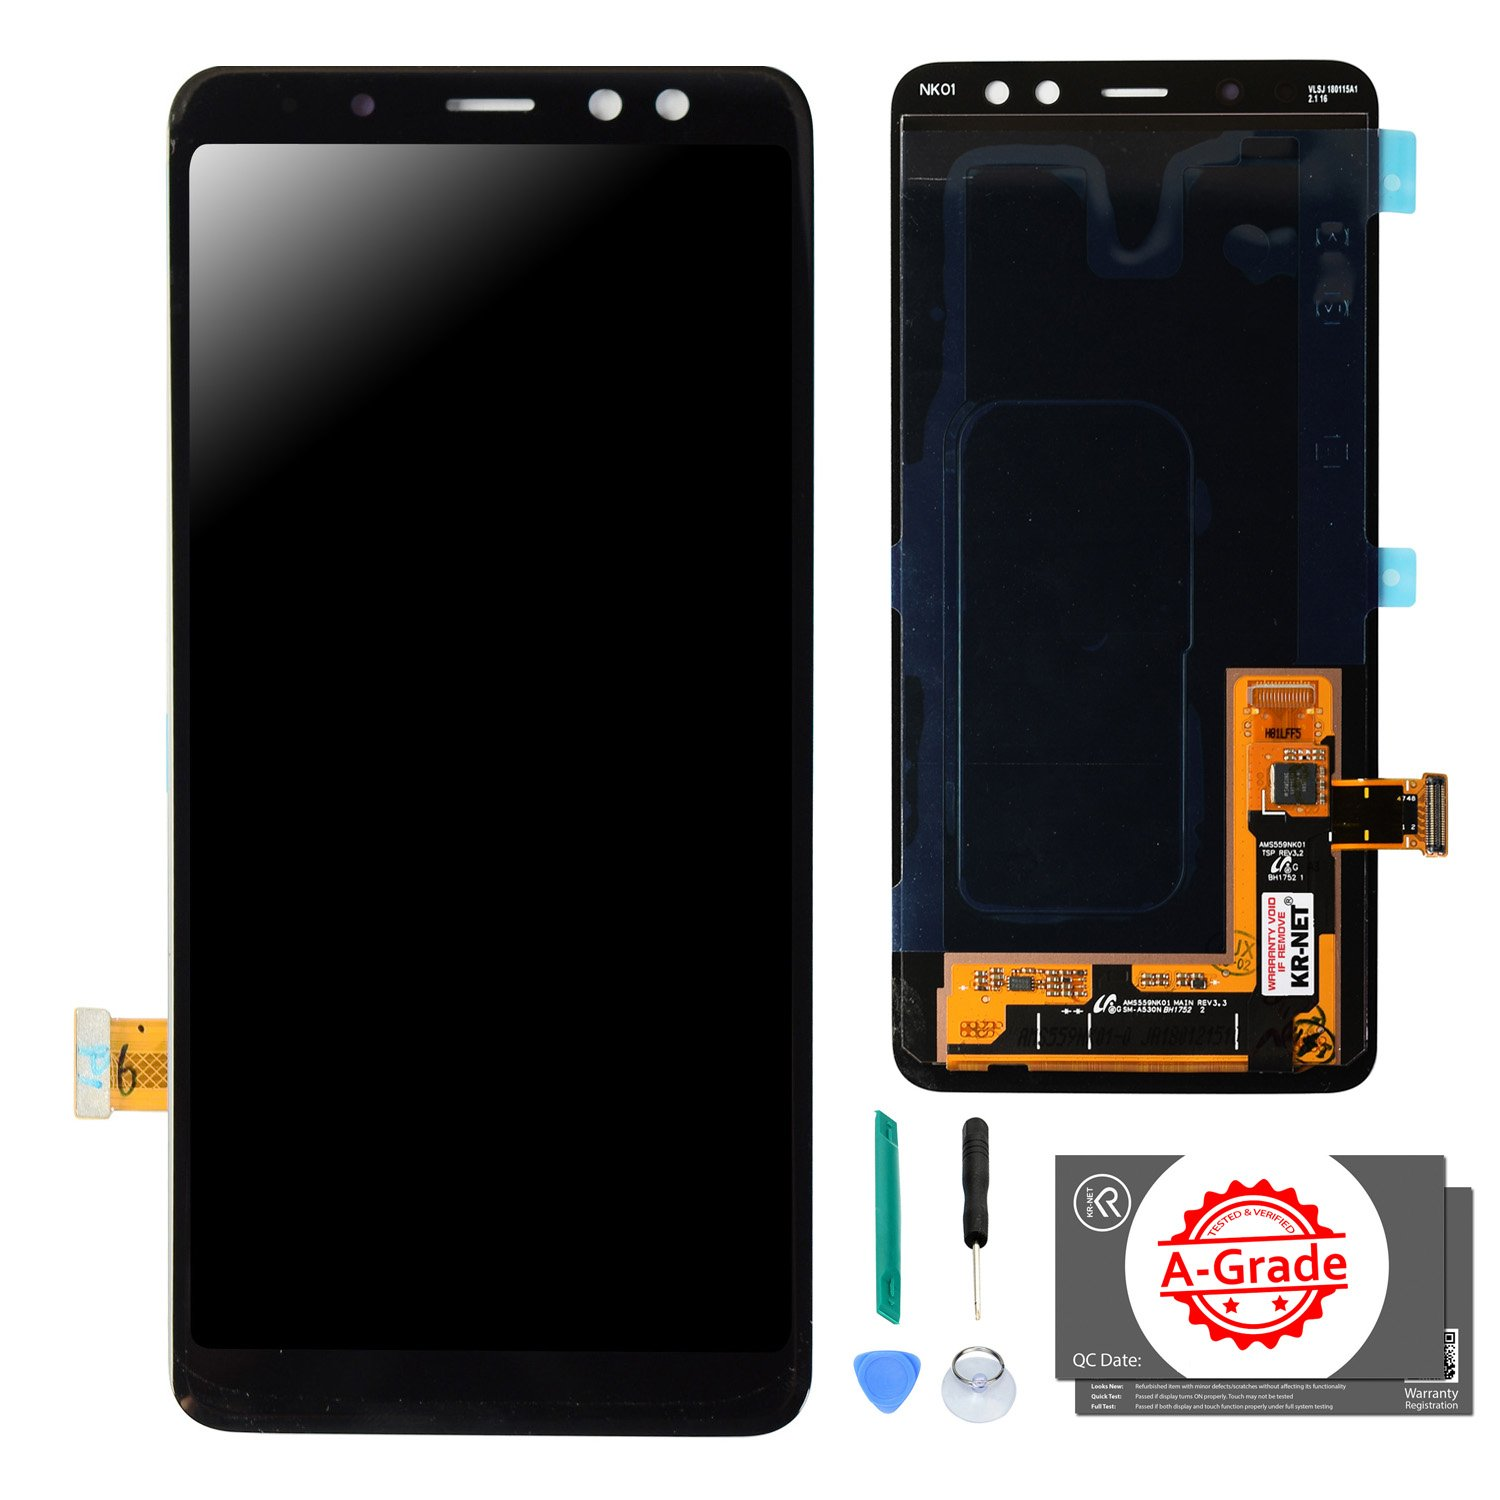 KR-NET LCD Display Touch Screen Digitizer Assembly Replacement for Samsung Galaxy A8 2018 A530, with Adhesive and Tools